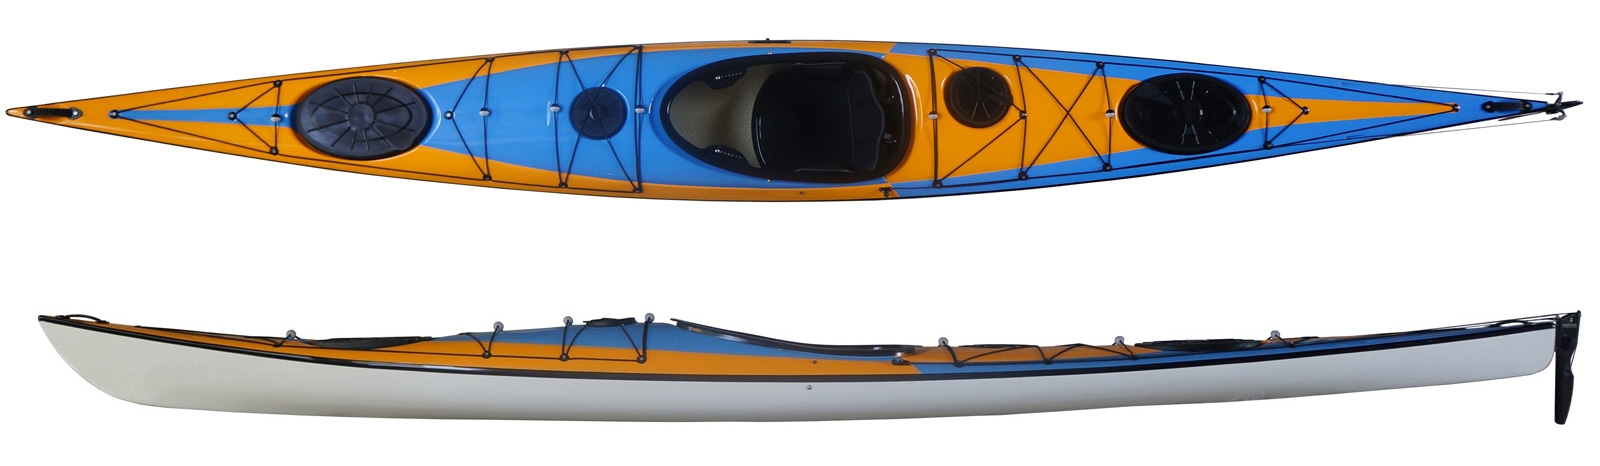 MarinTrek18-blue-yellow